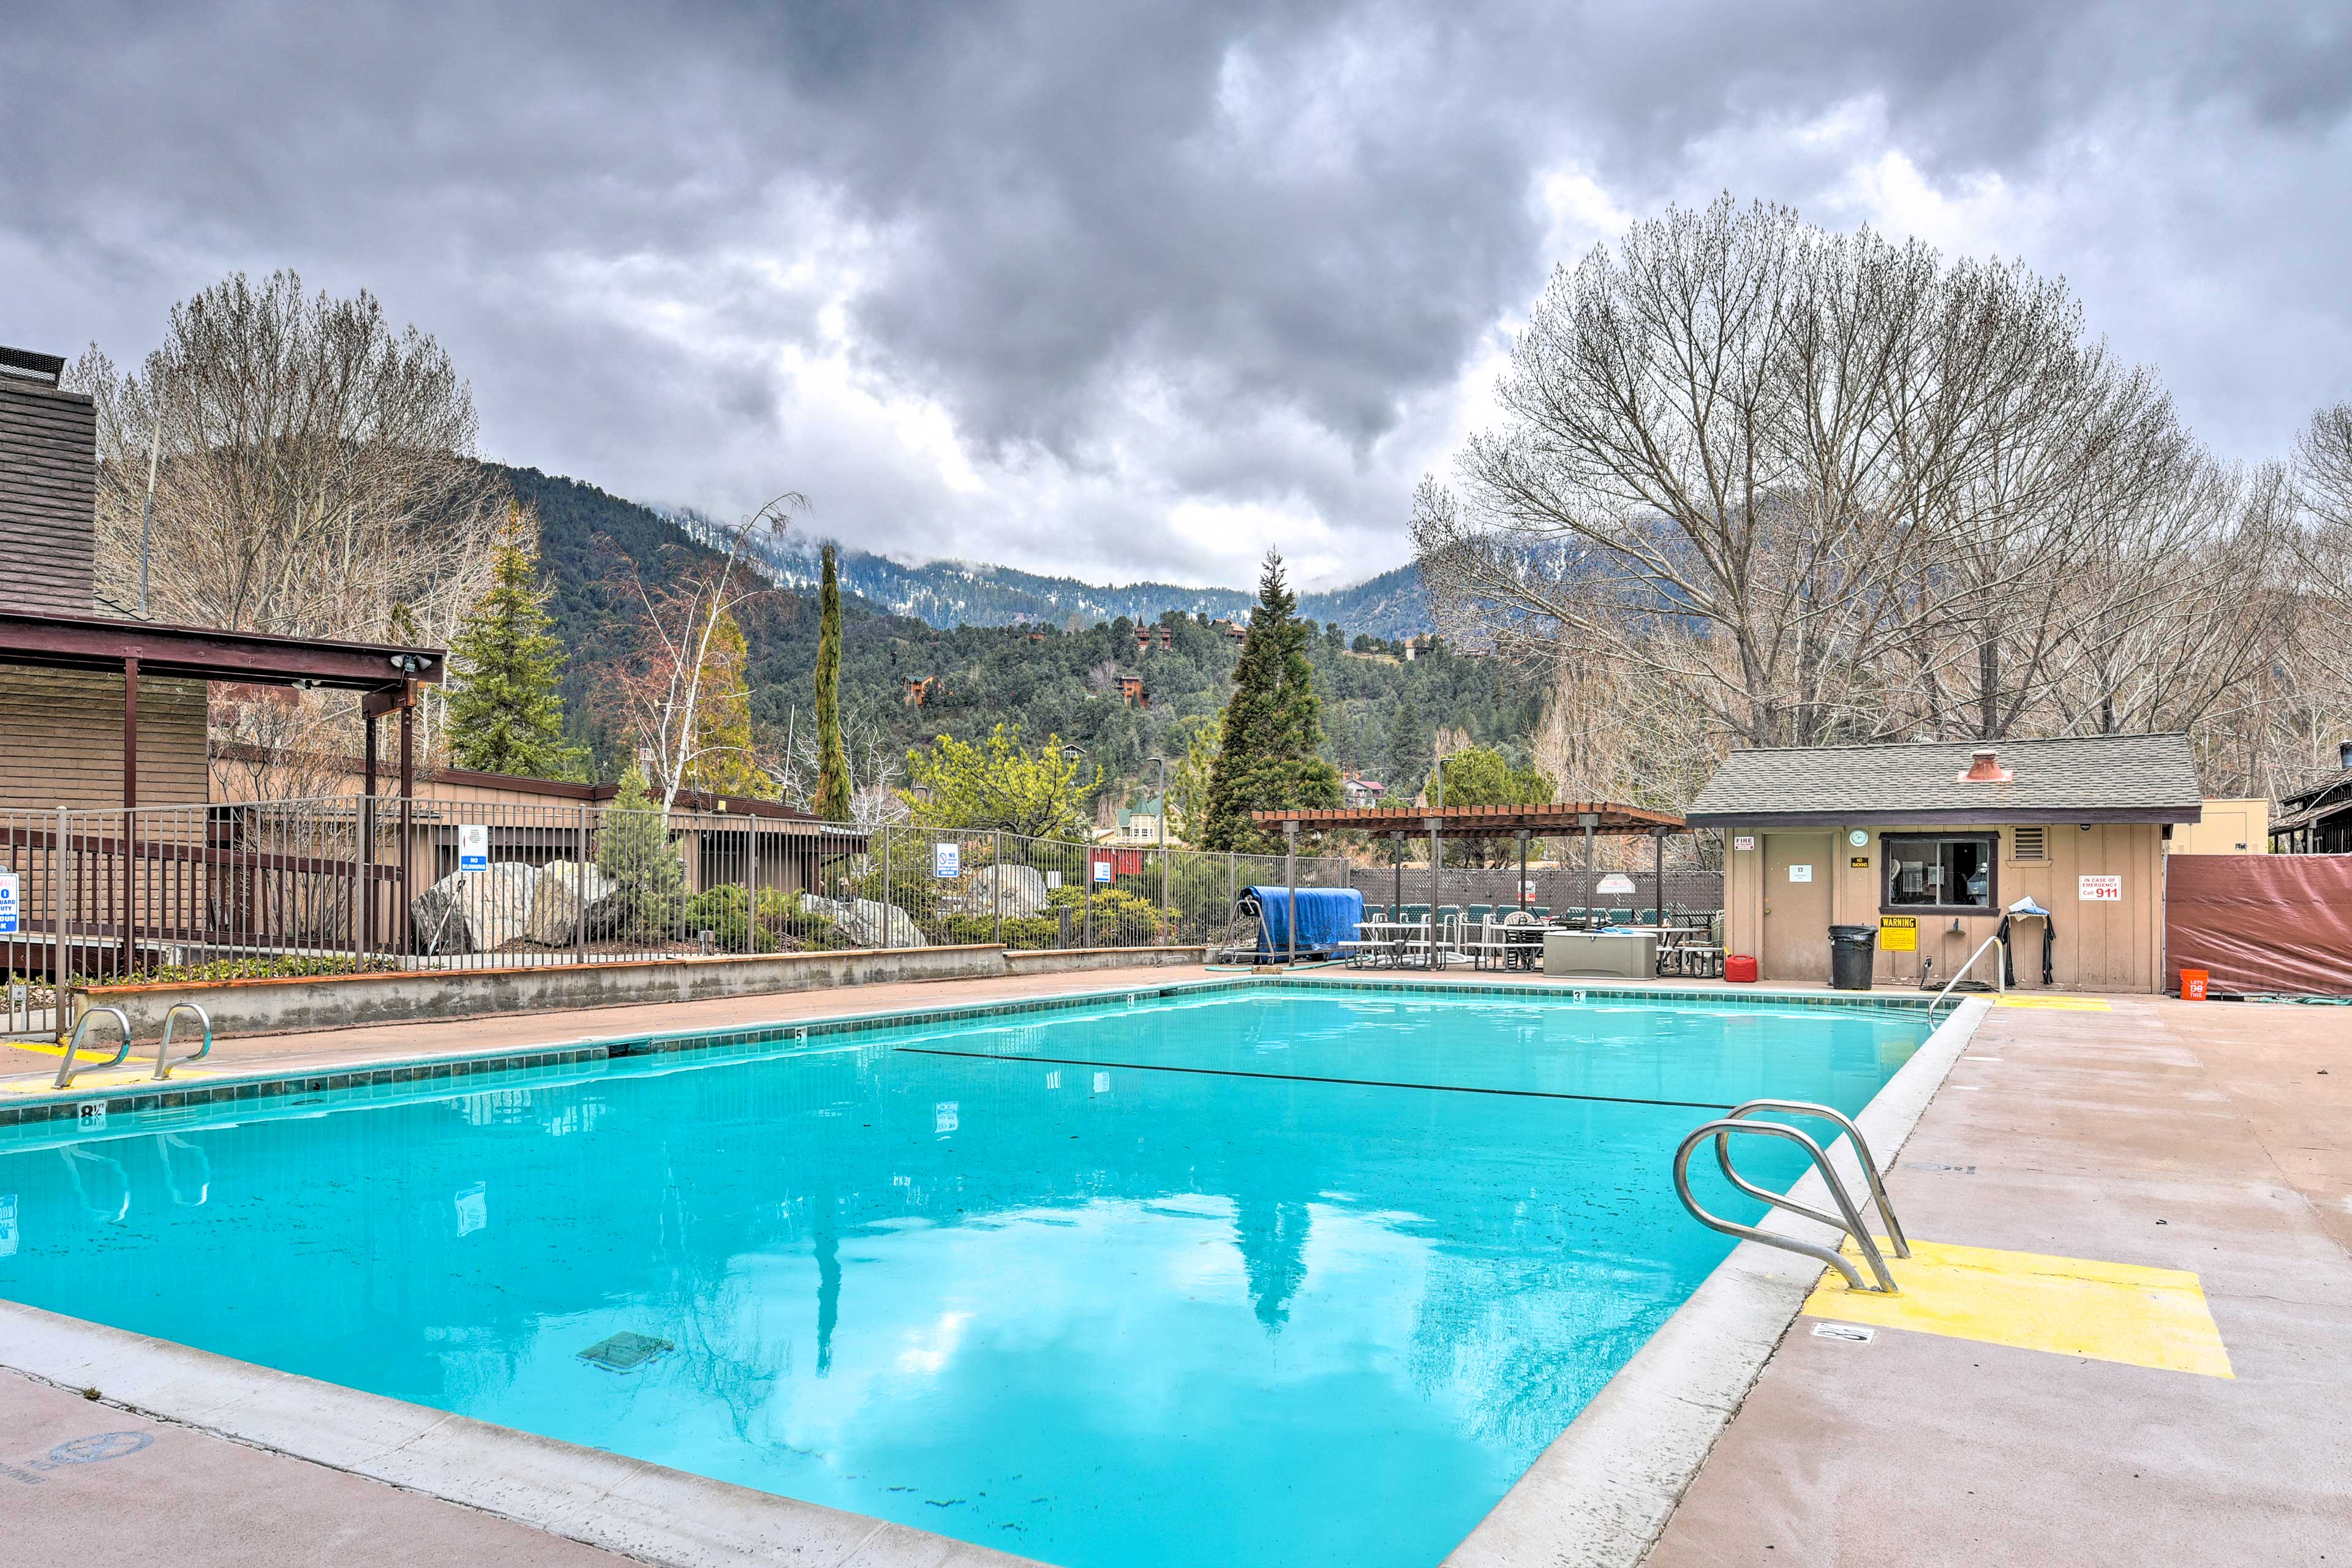 Splash right into a day of fun down at the Pine Mountain Club's community pool.